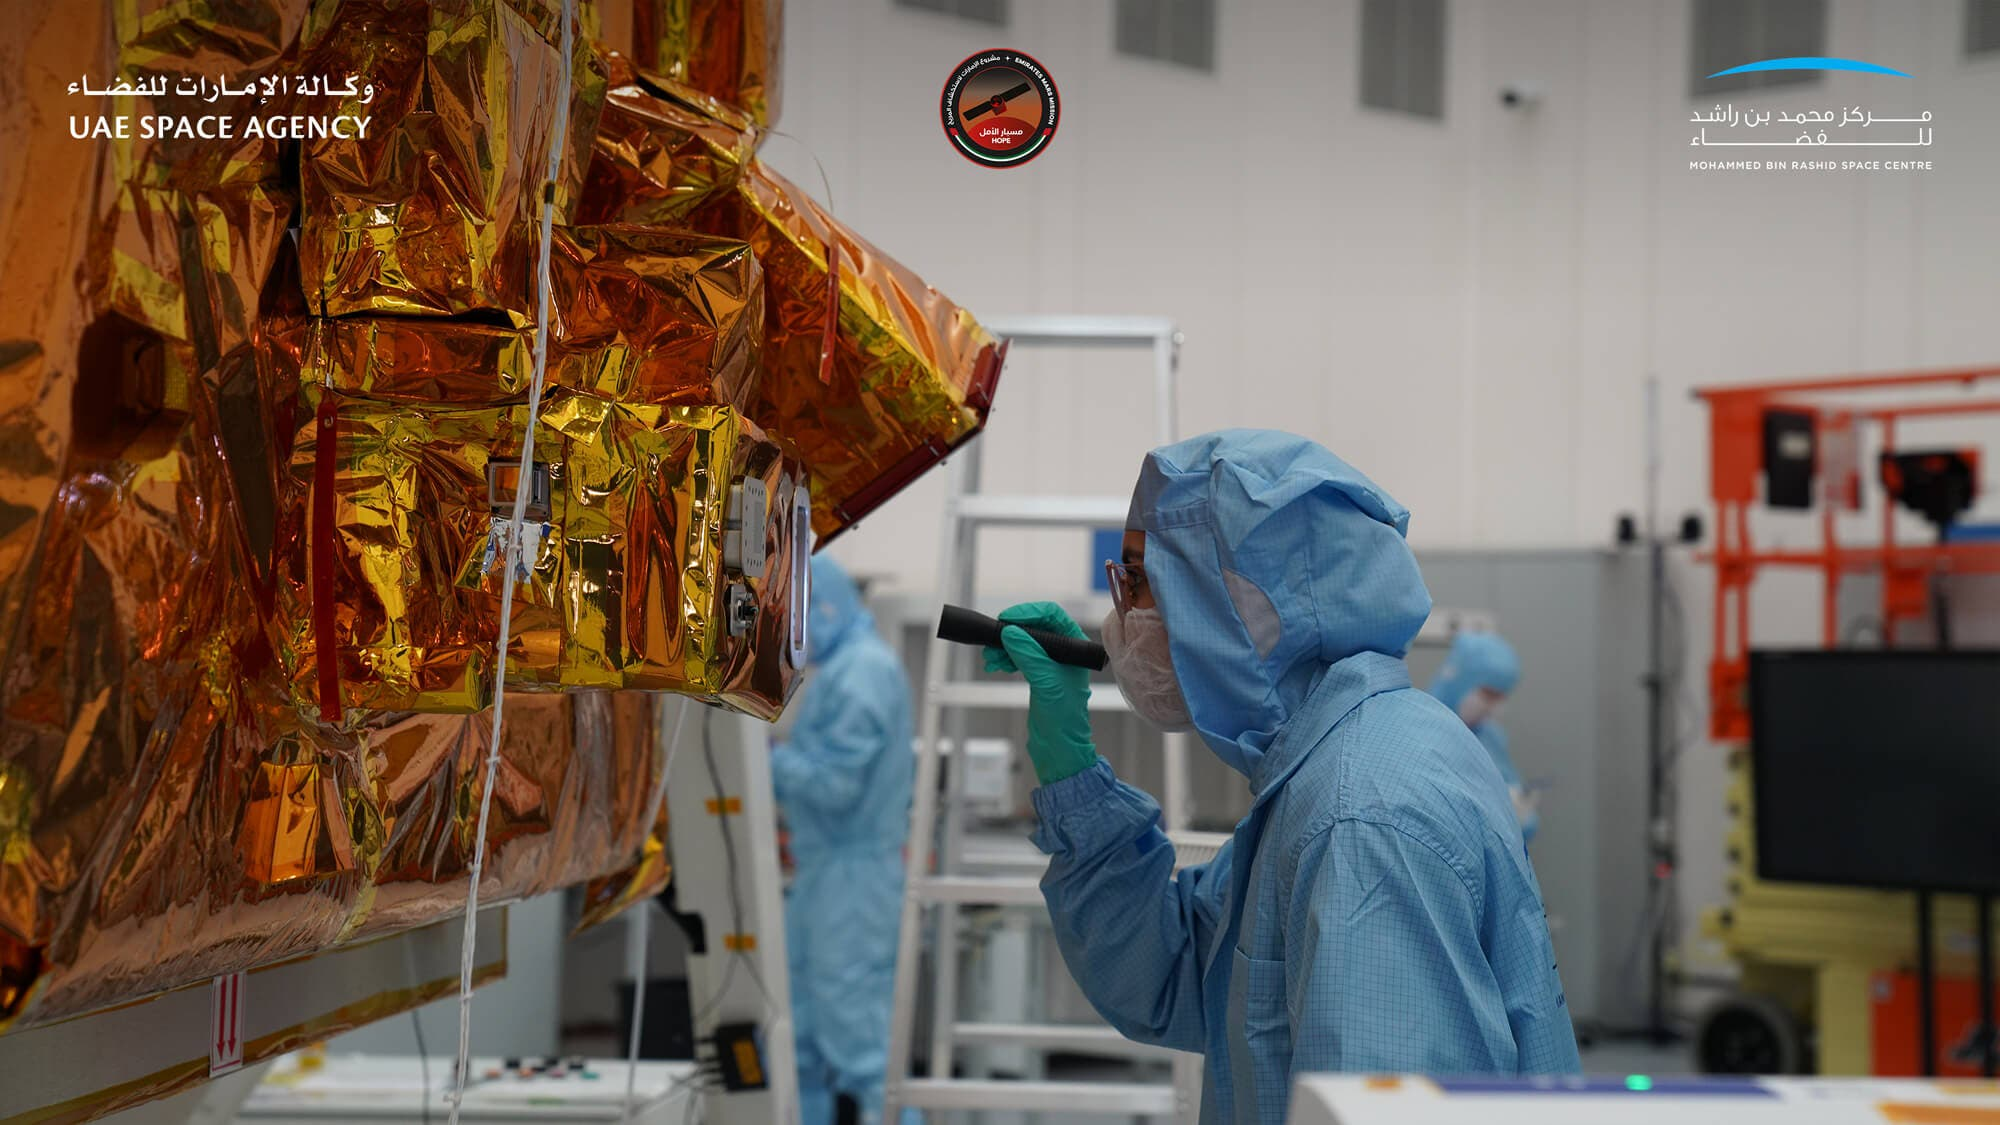 A scientist inspects the Emirates Mars Mission Hope Probe. (UAE Space Agency and Mohammed bin Rashid Space Centre)